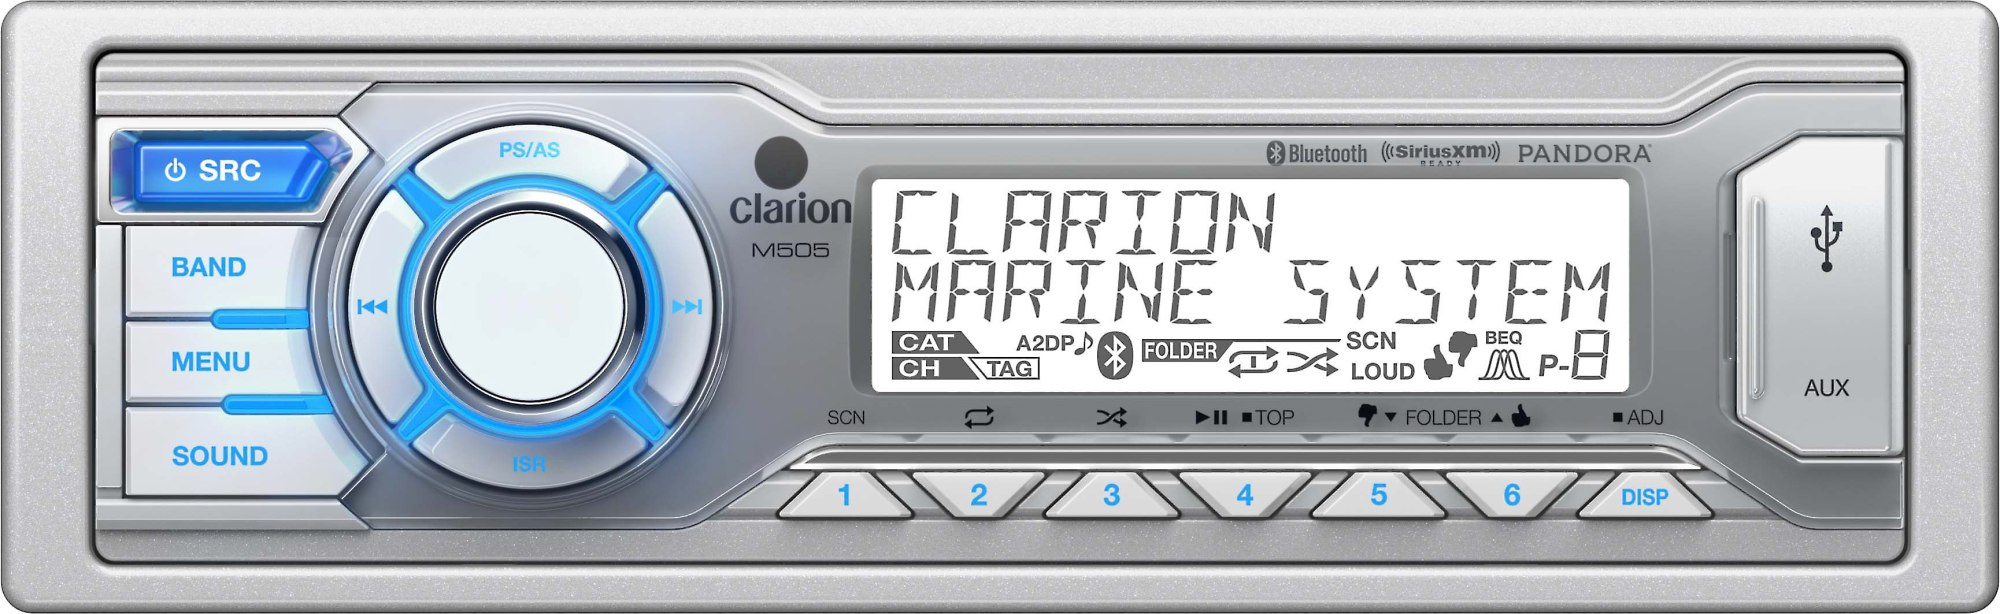 hight resolution of clarion m505 marine digital media receiver with bluetooth does not play cds at crutchfield